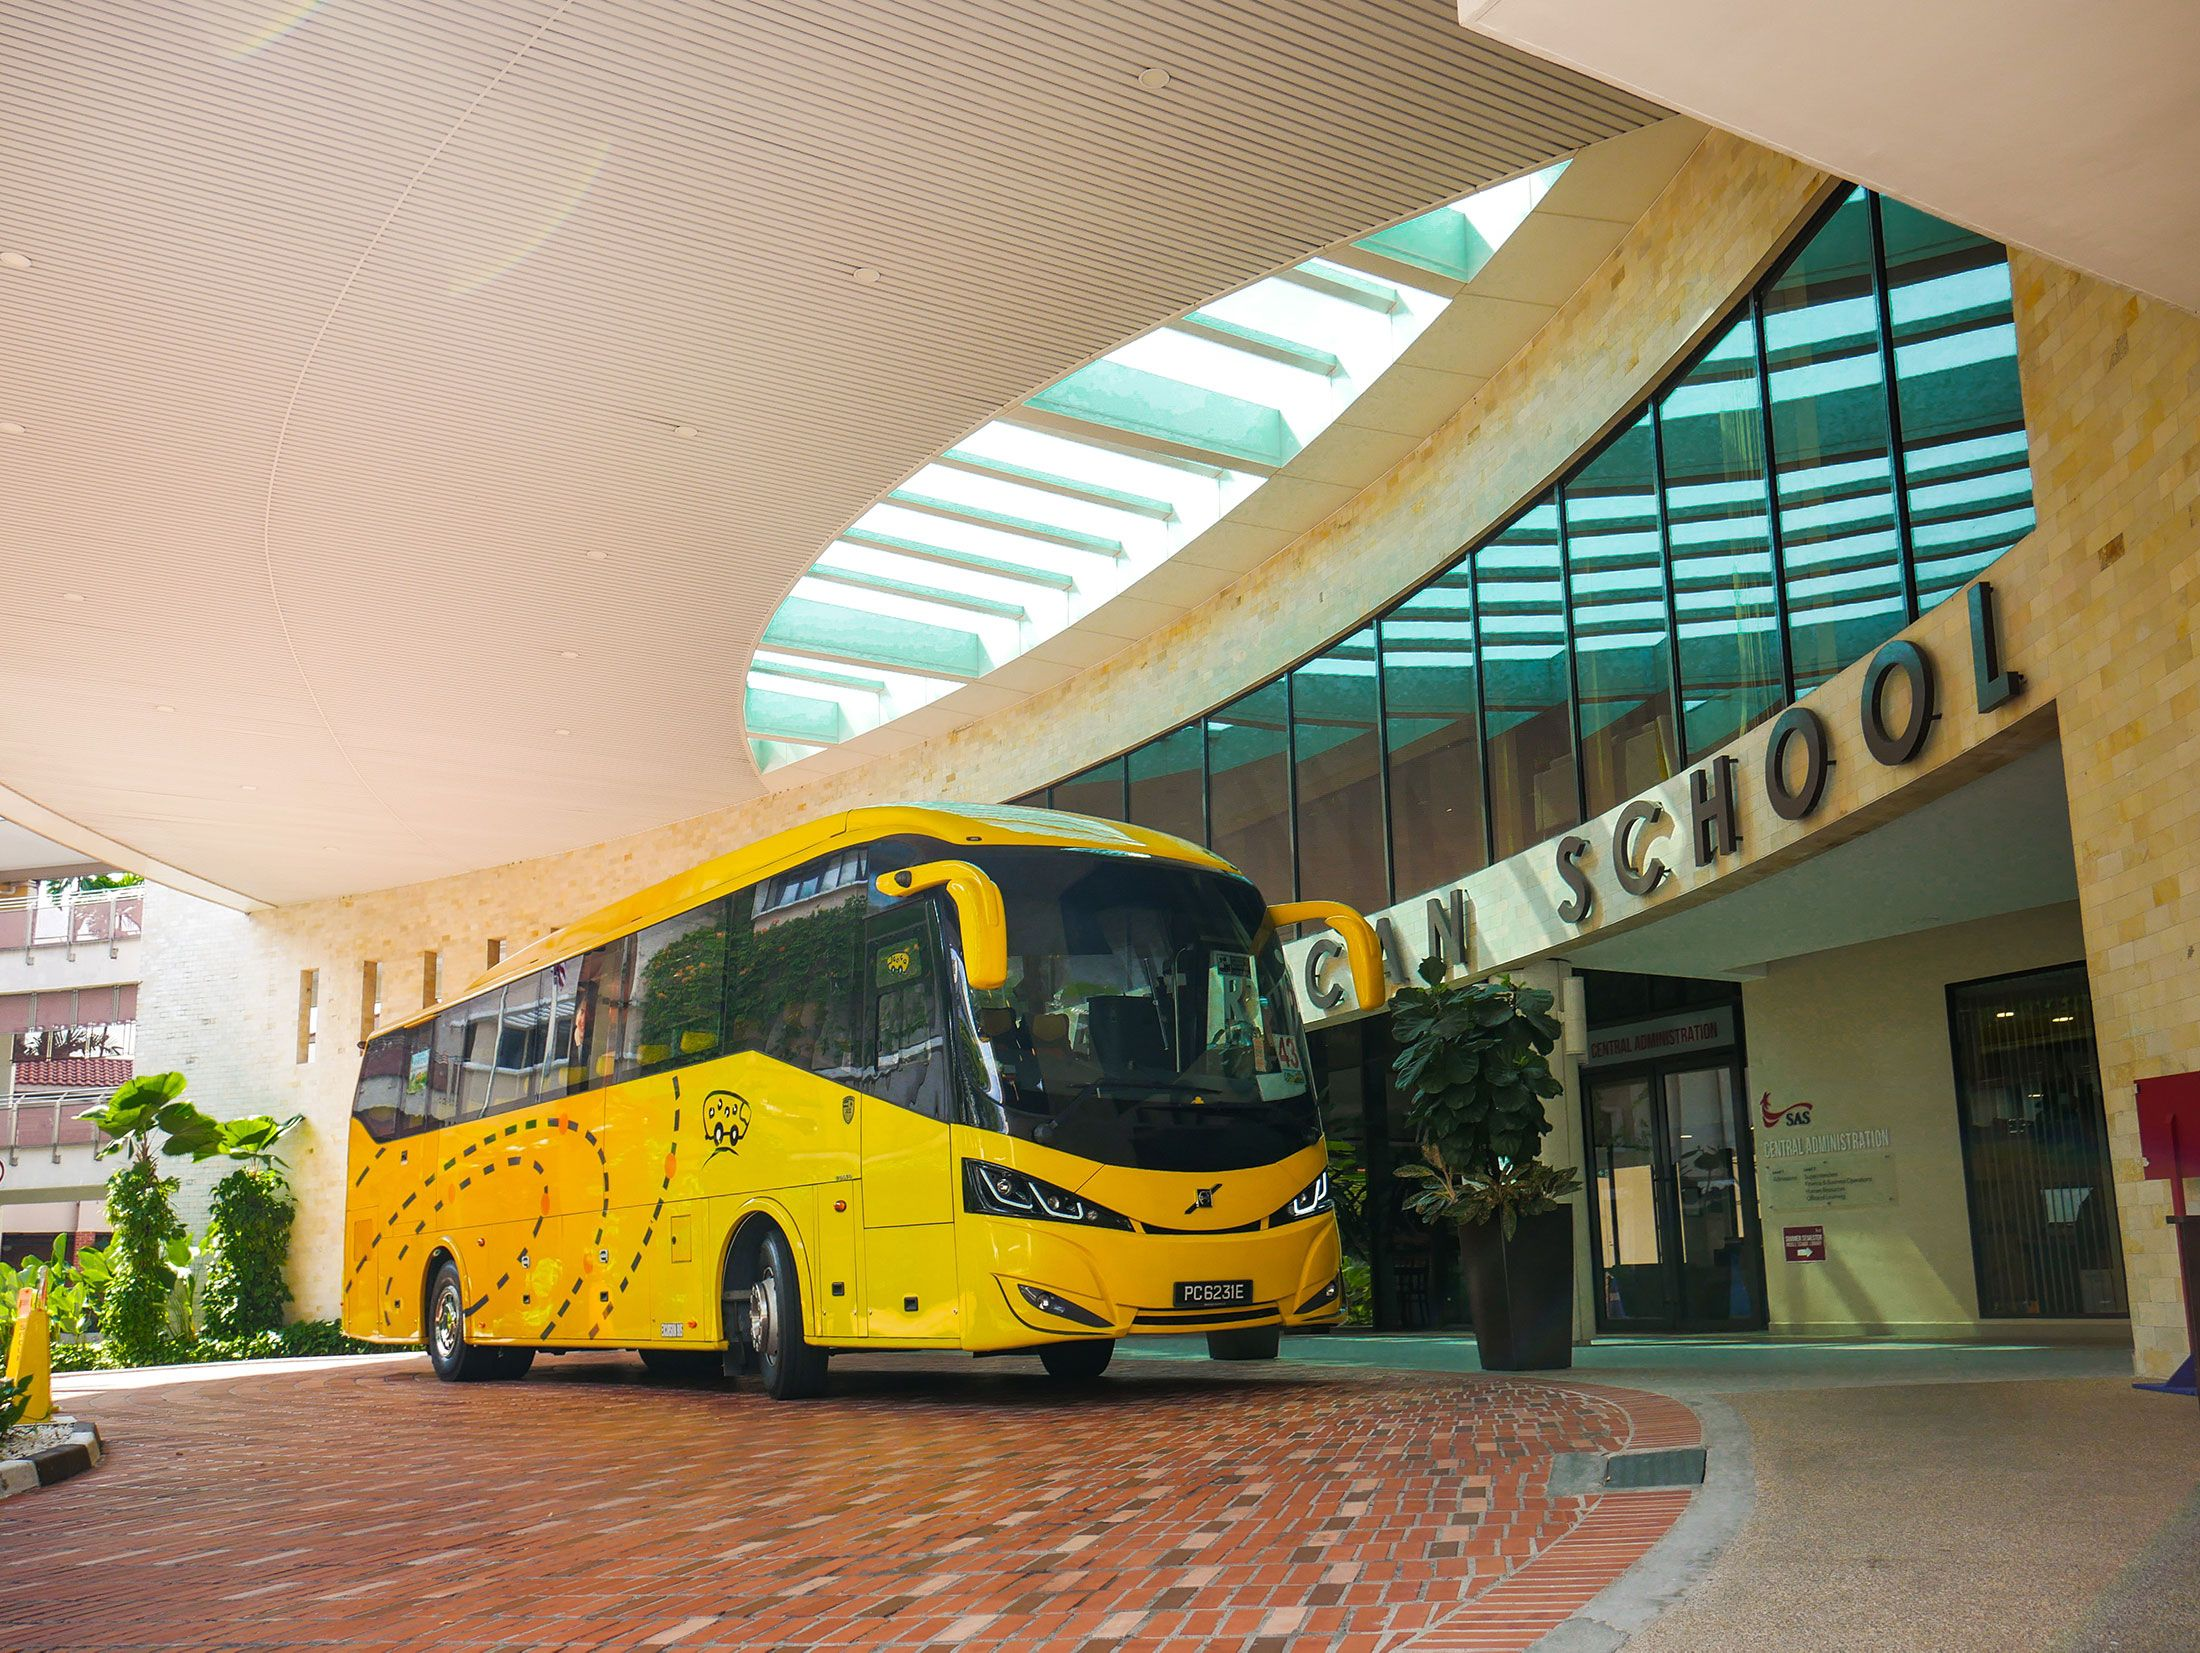 Volvo B7R coach parked outside a school in Singapore